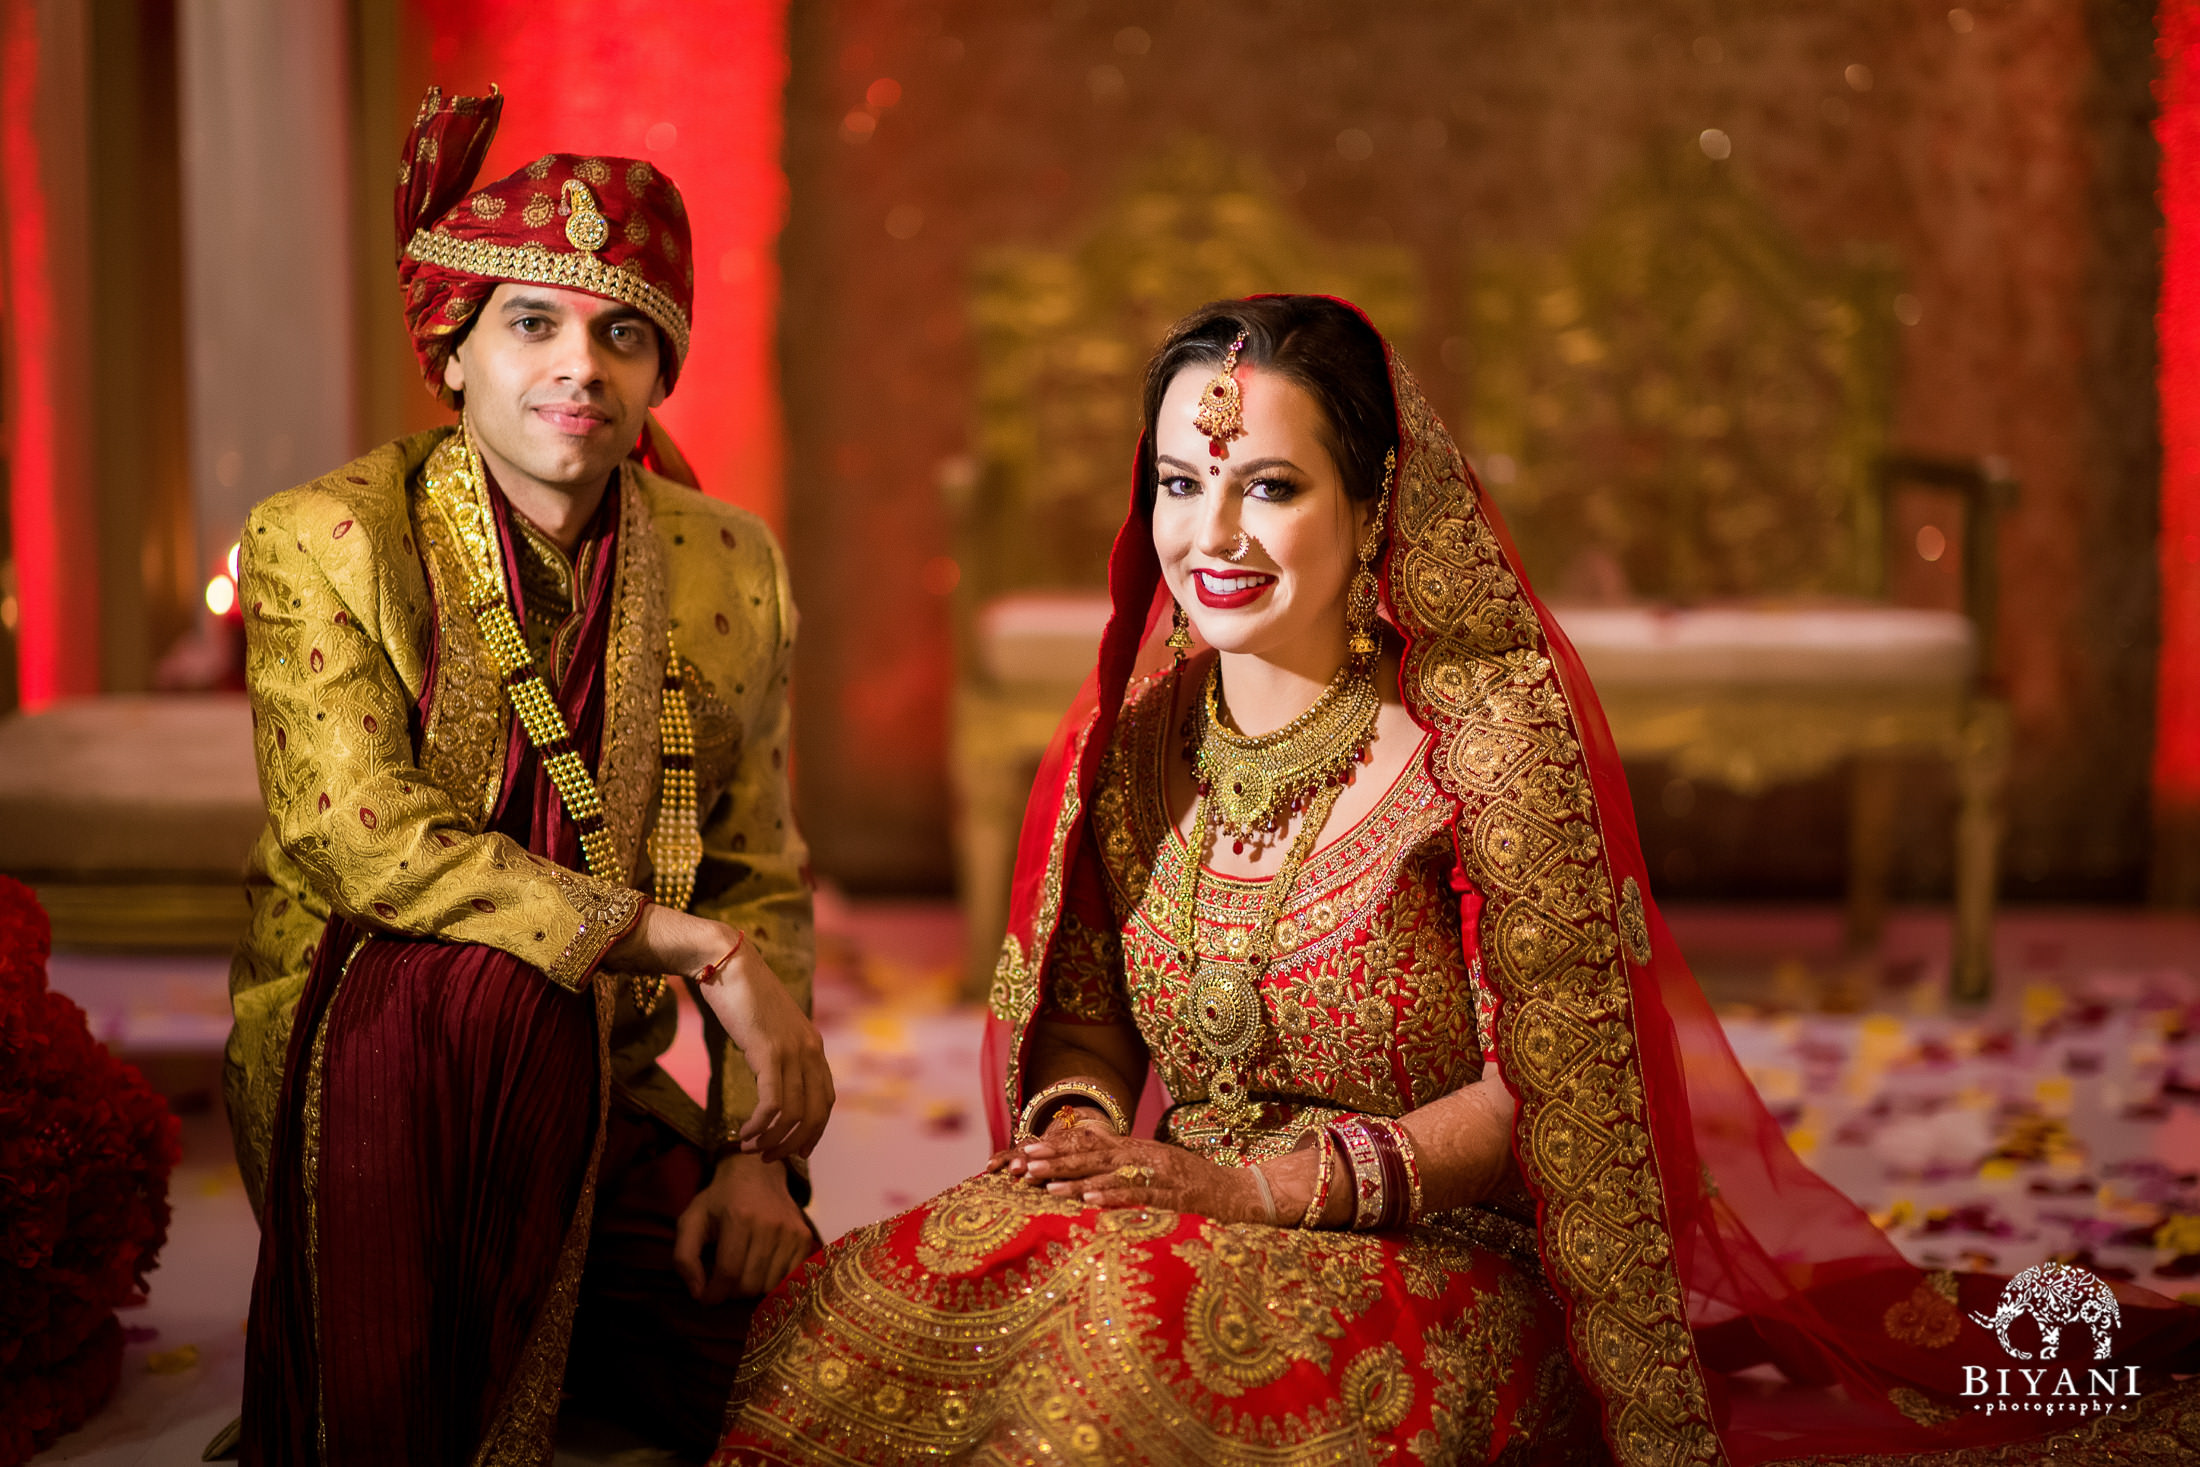 Bride and groom pose together in ceremony outfits